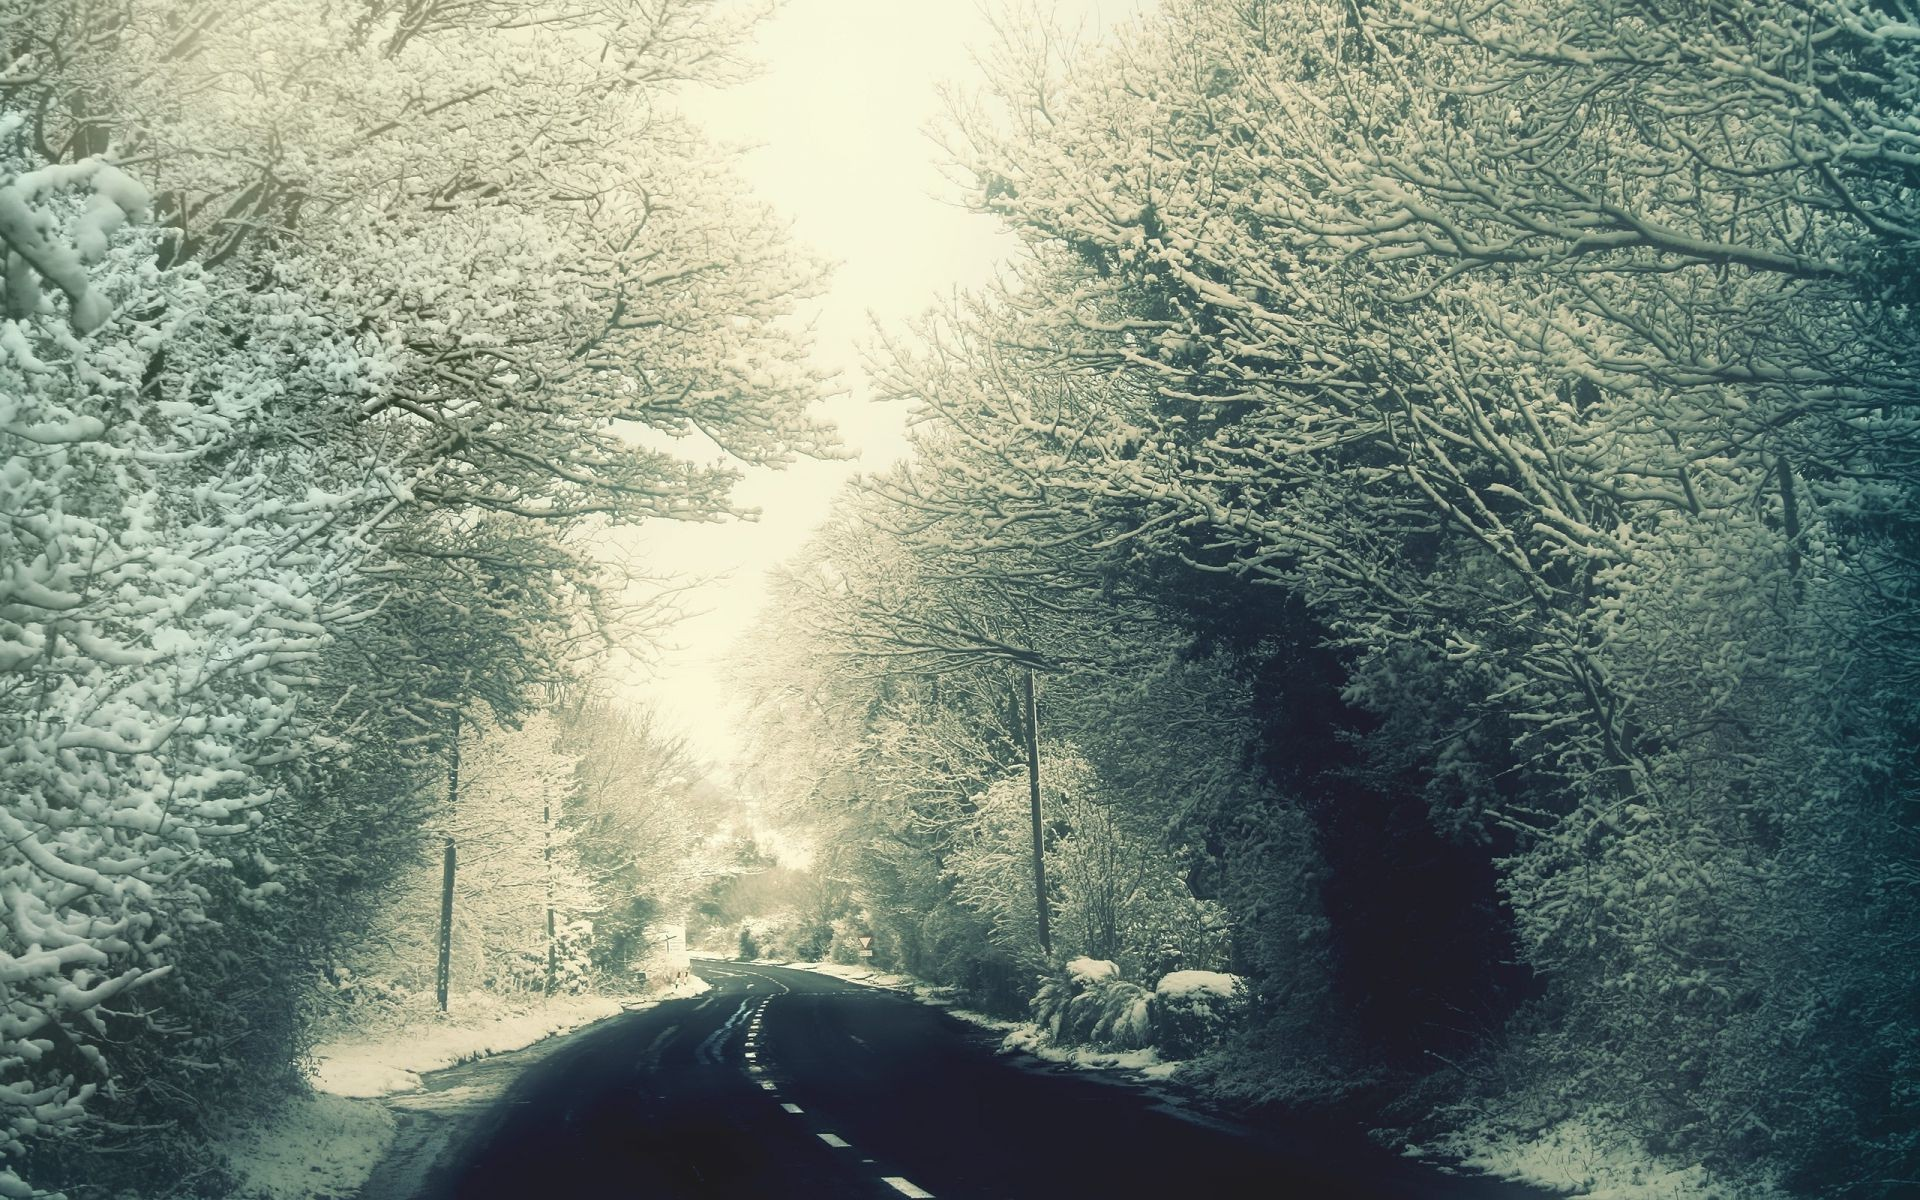 road in winter, the rime on trees, winter highway